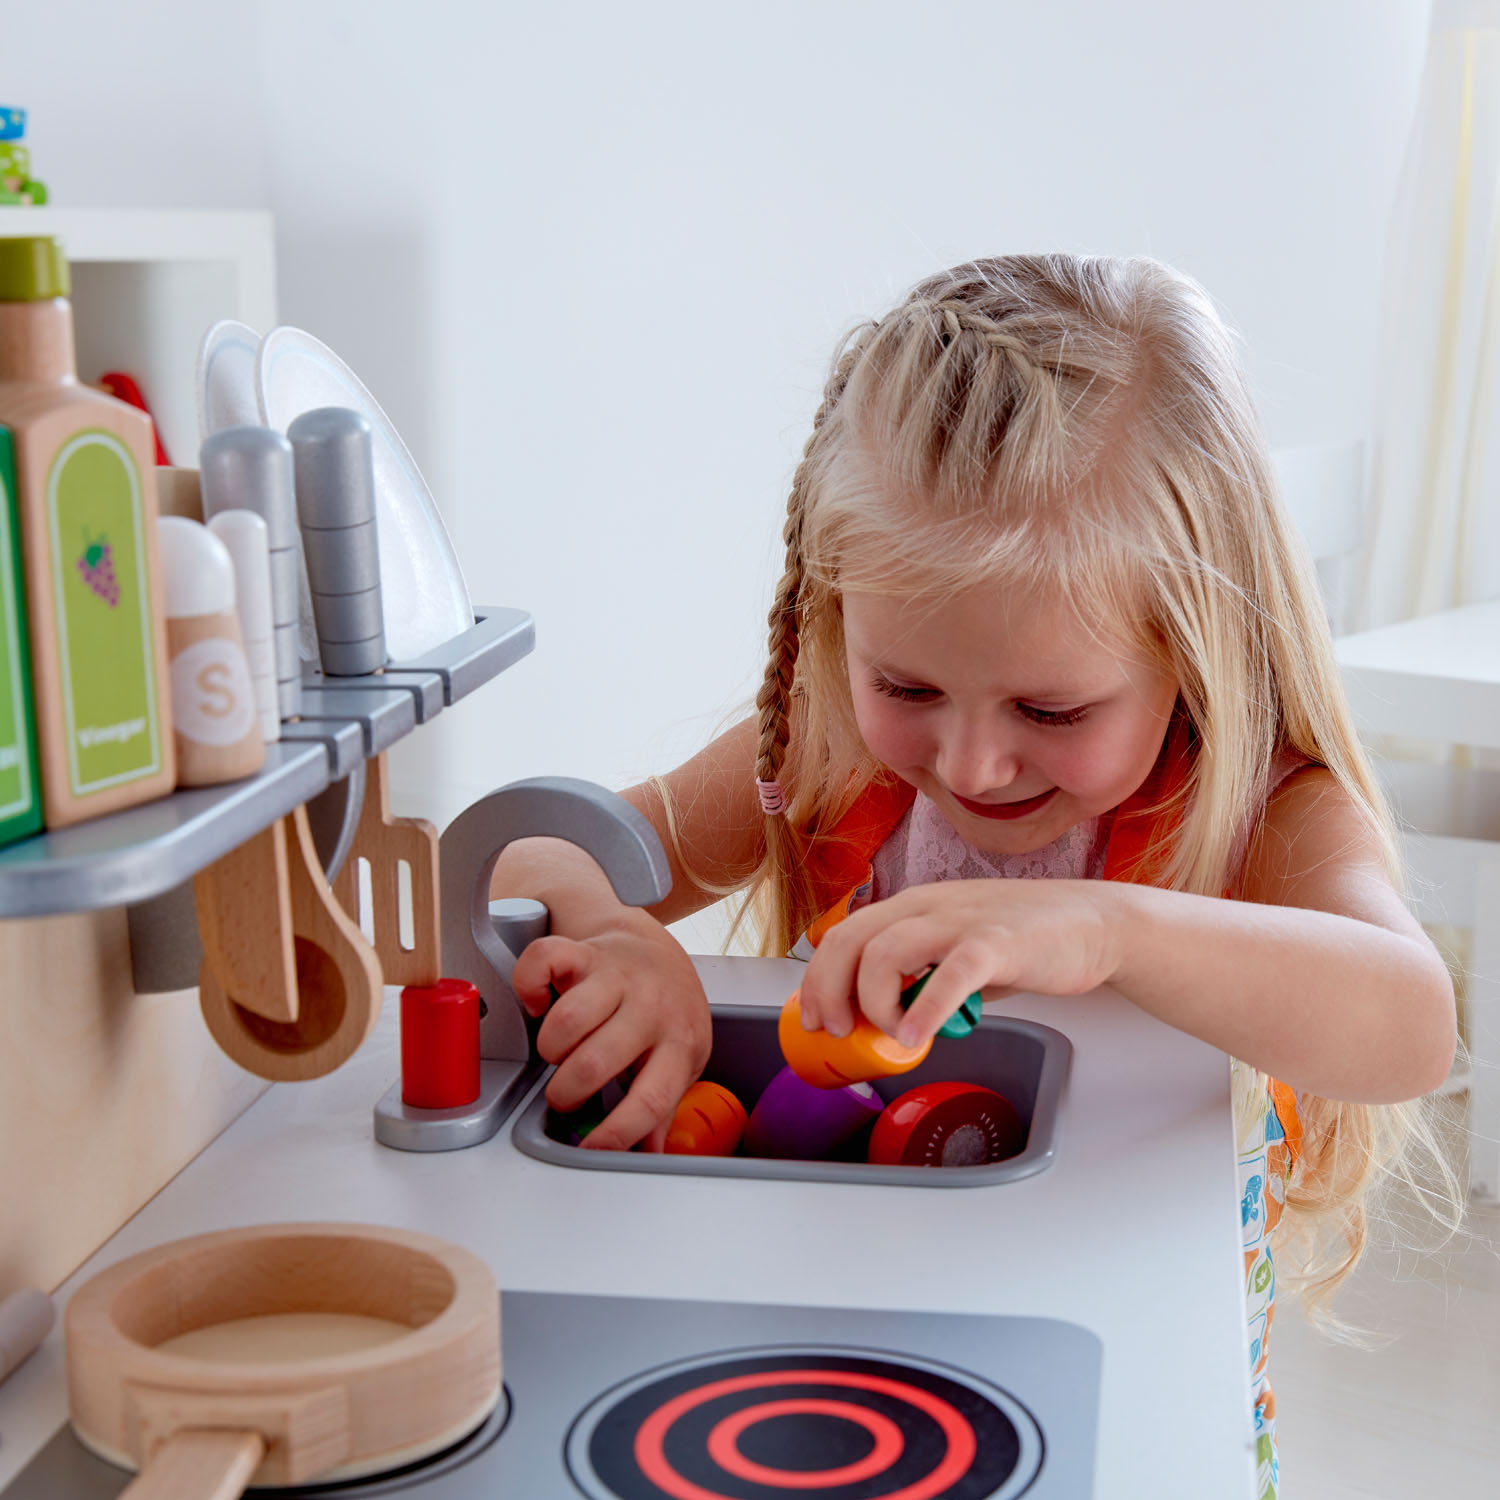 hape kitchen build your own cabinets 北欧风美食家厨房 e3152 toys